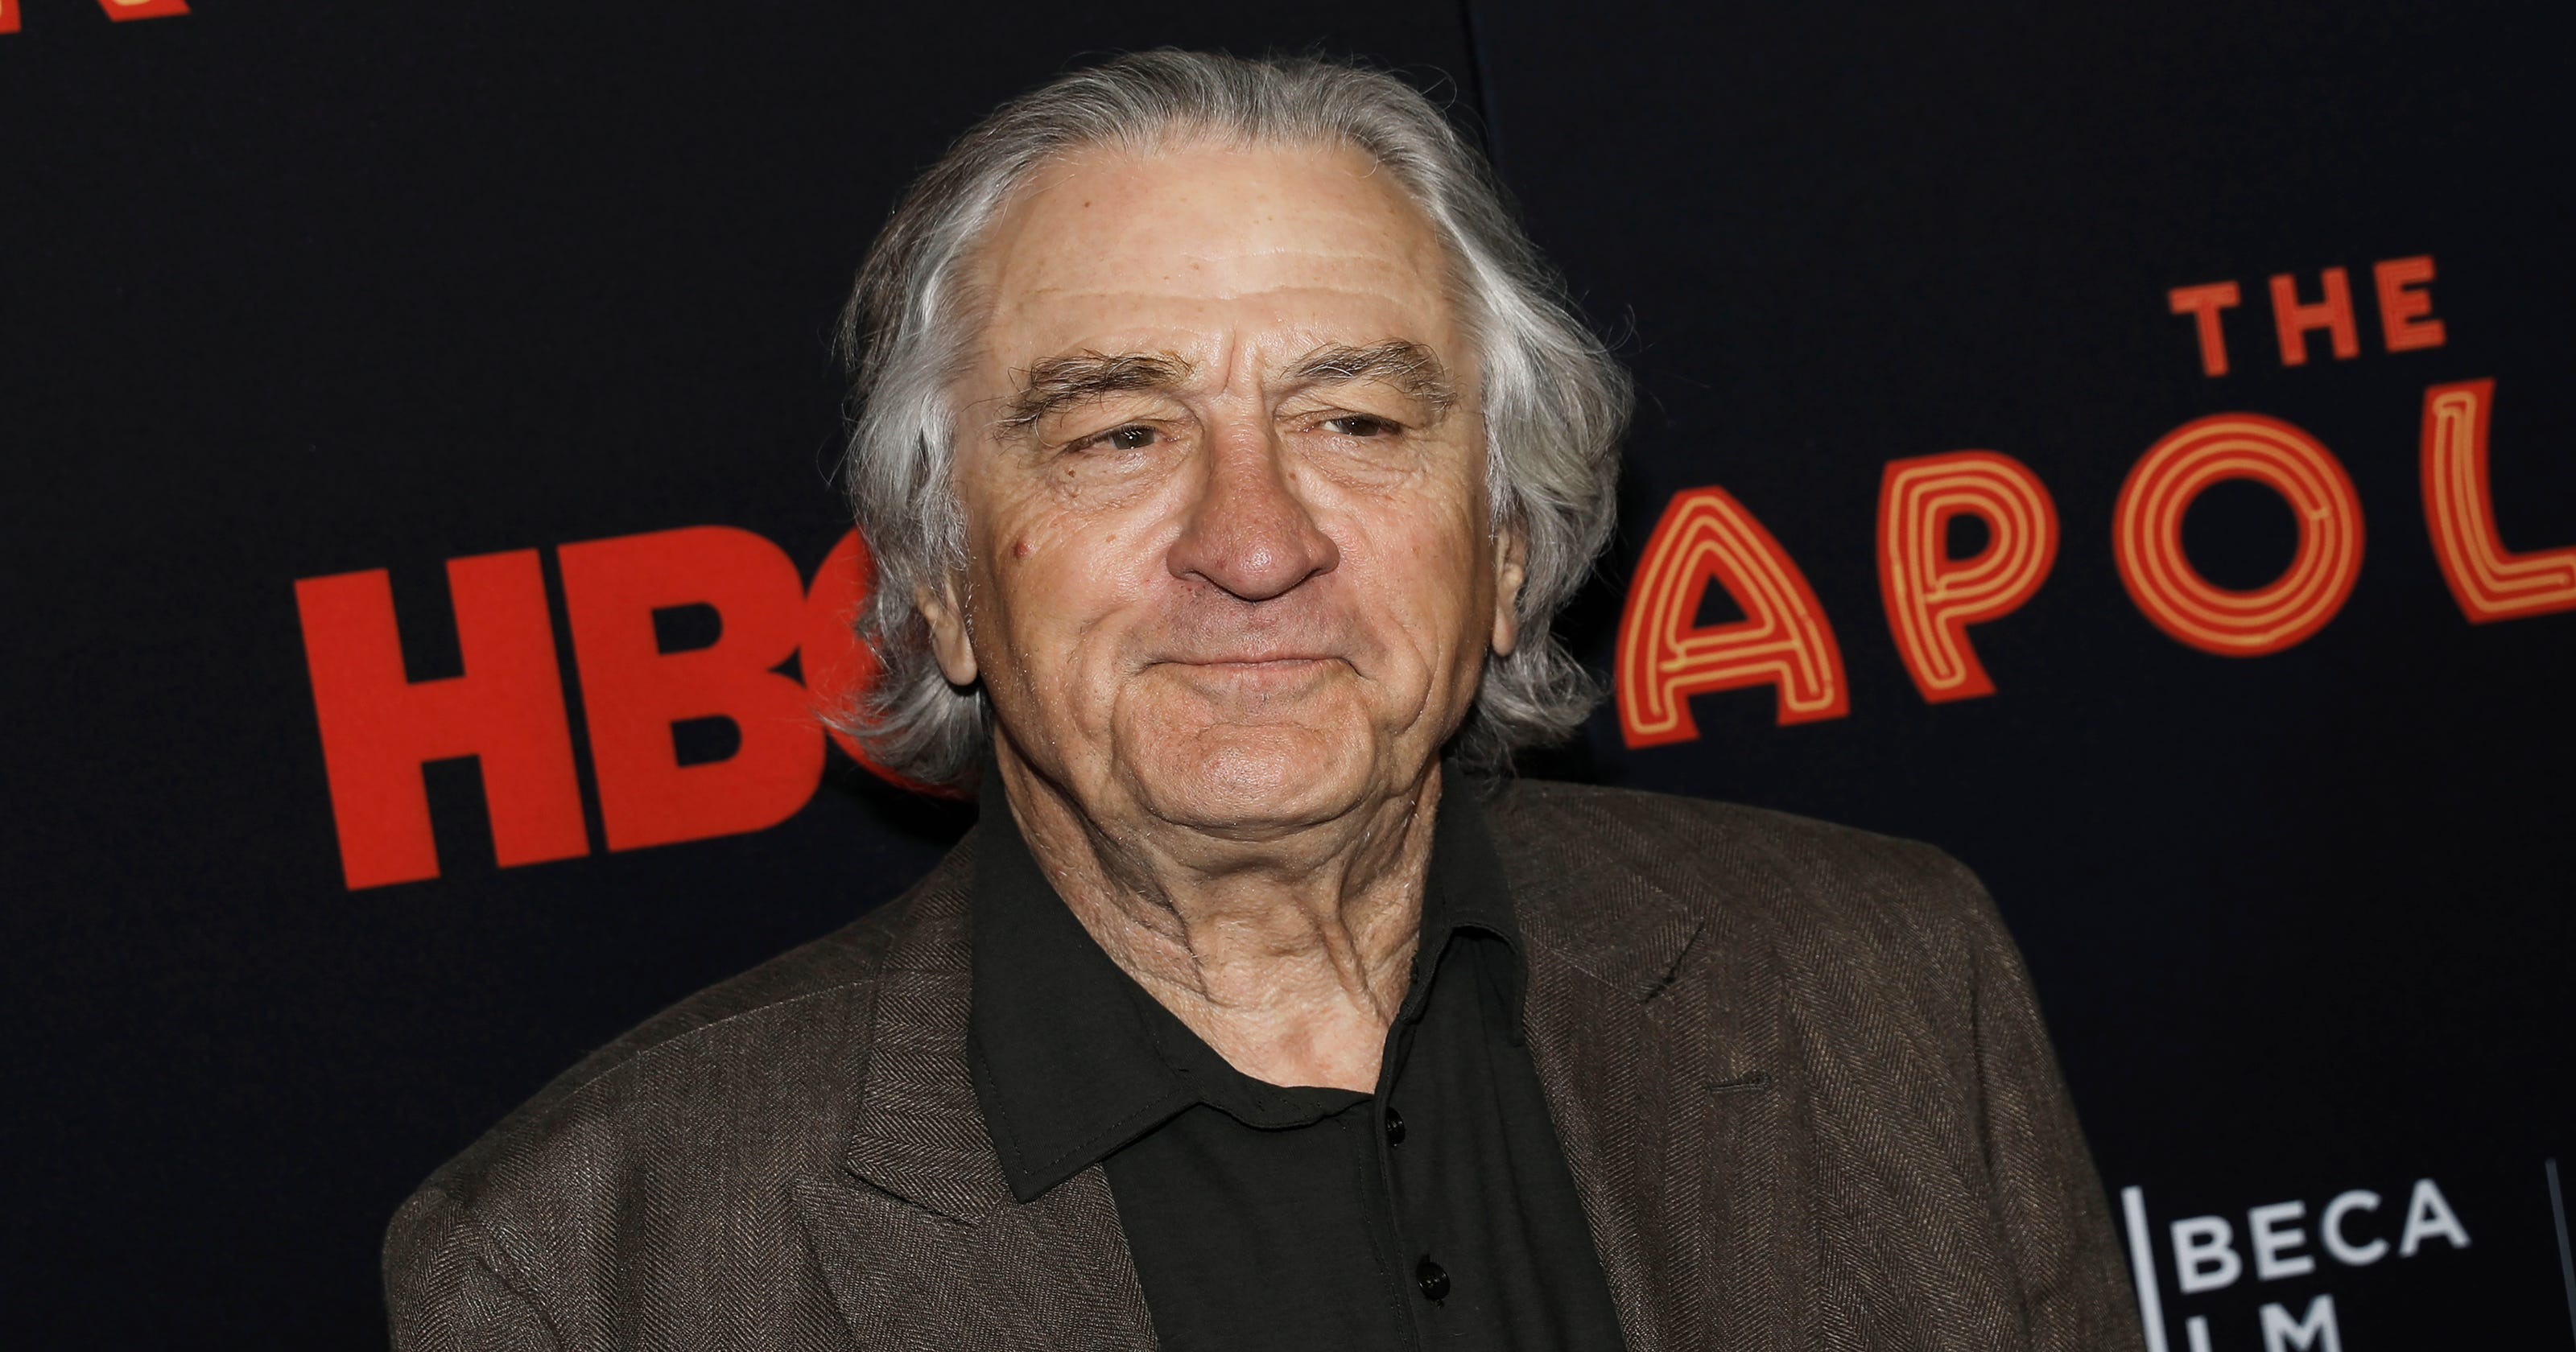 Robert De Niro: Trump getting impeached would 'Make America Great Again'